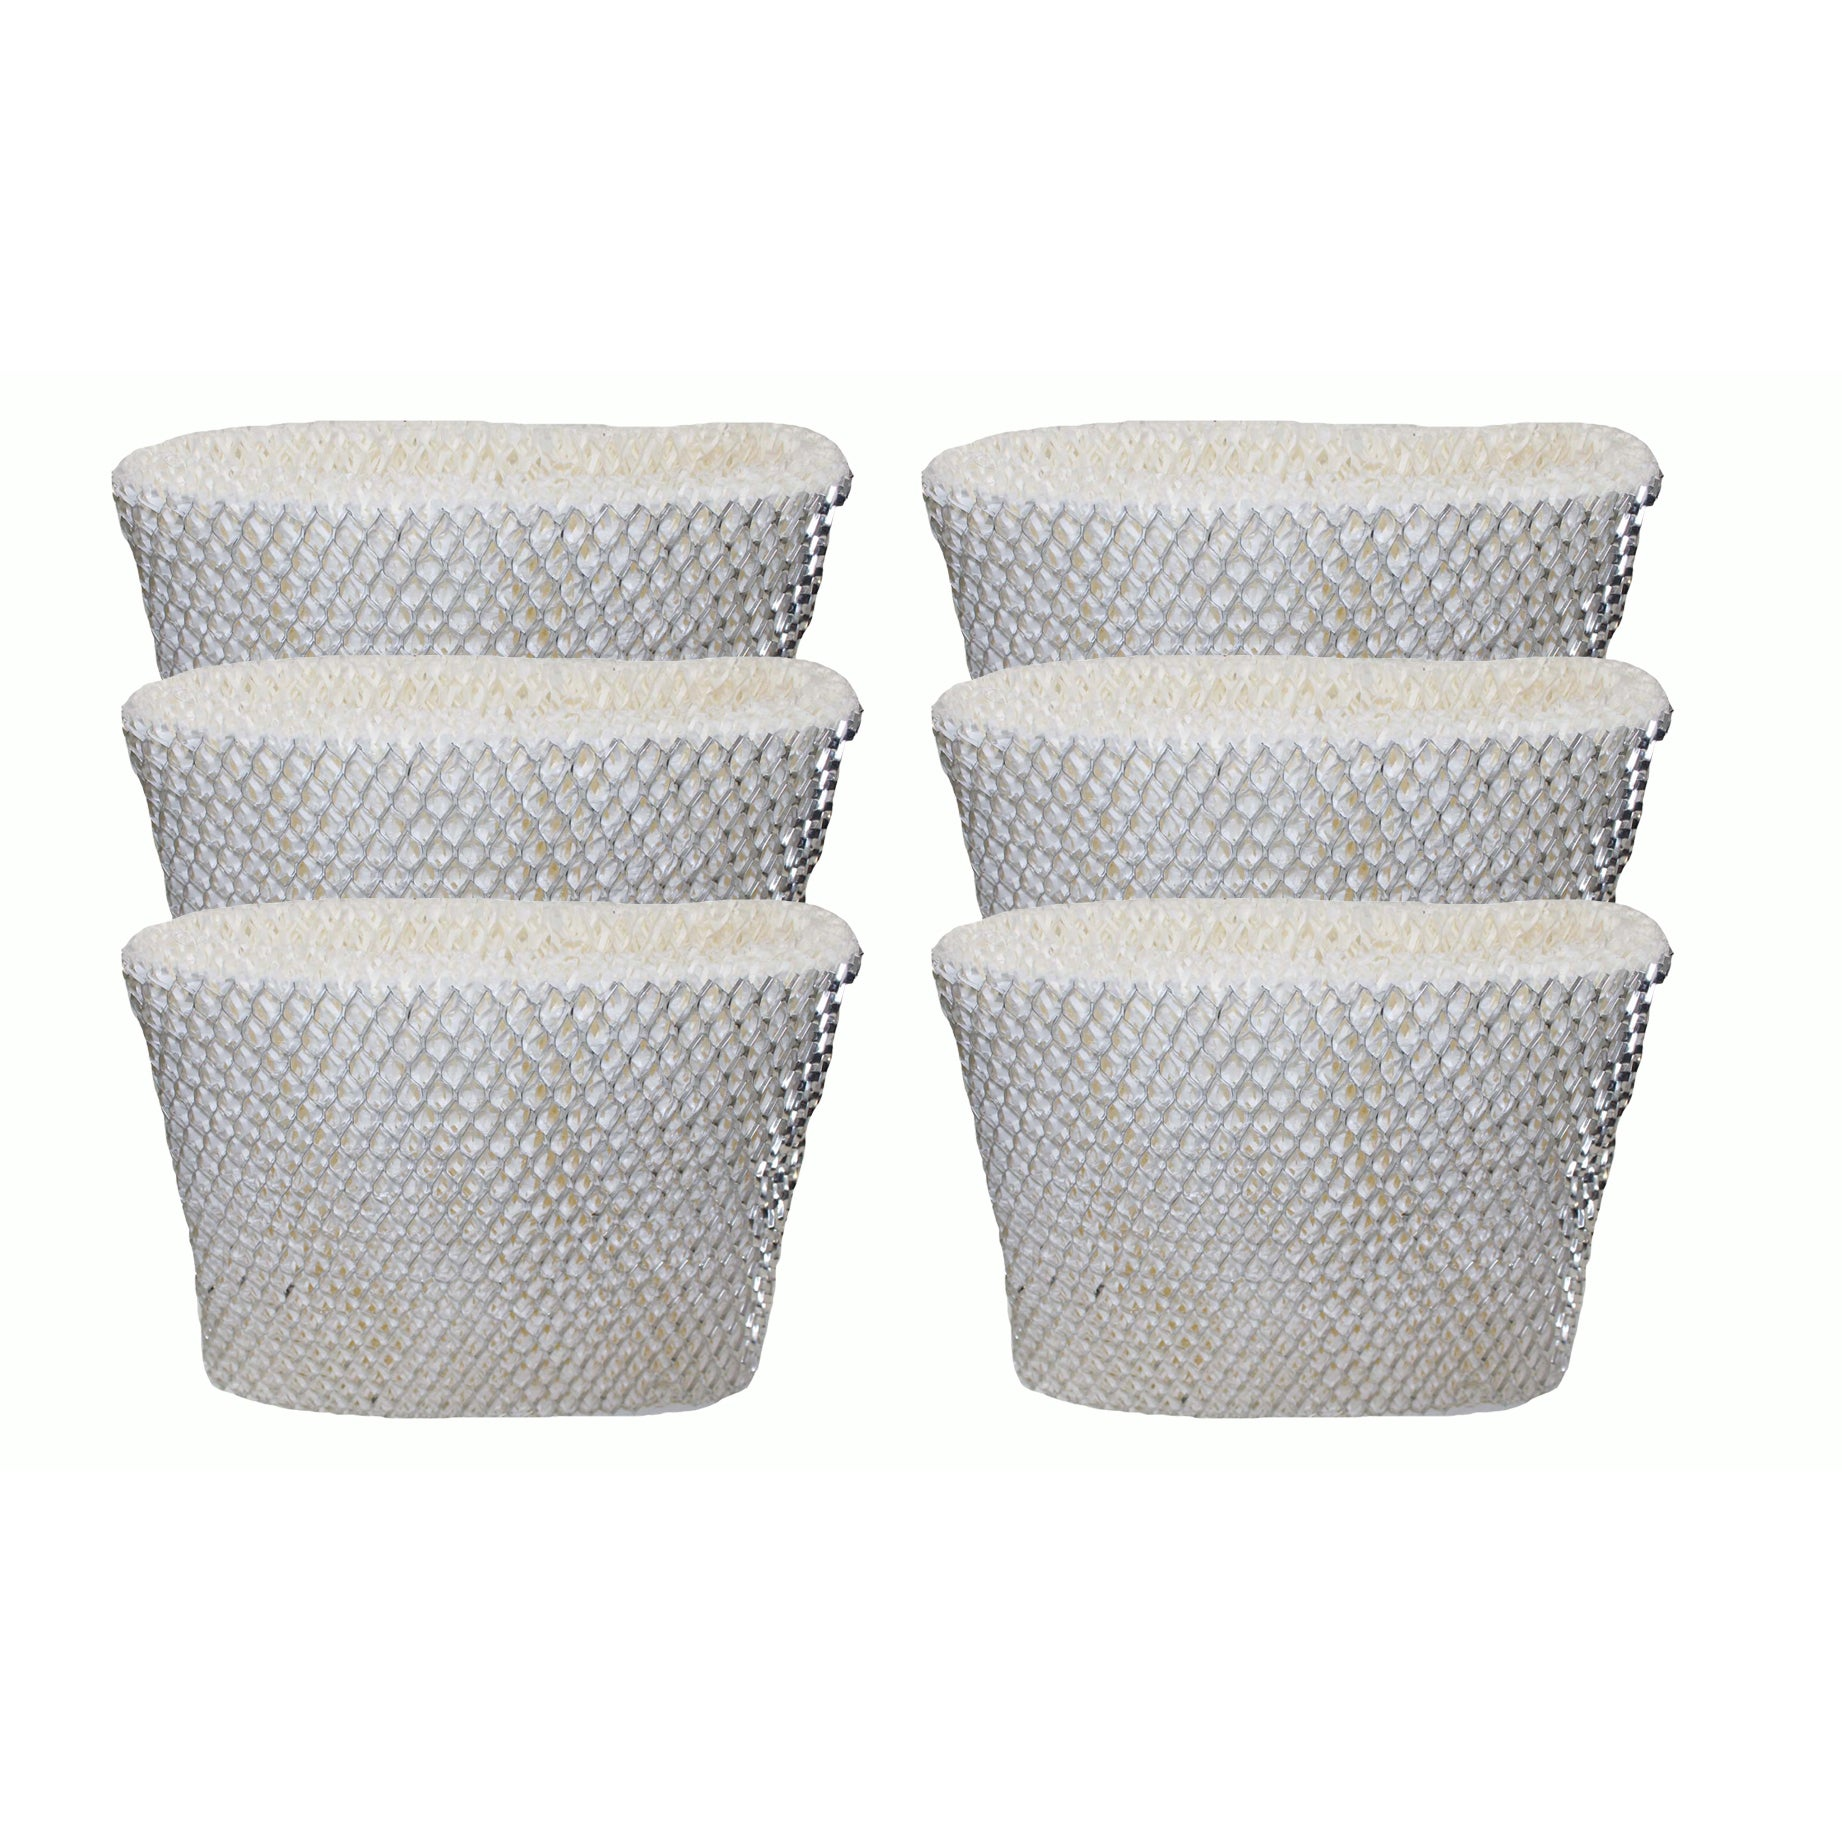 Crucial 6 Holmes HWF65 and H65-C Humidifier Wick Filters,...